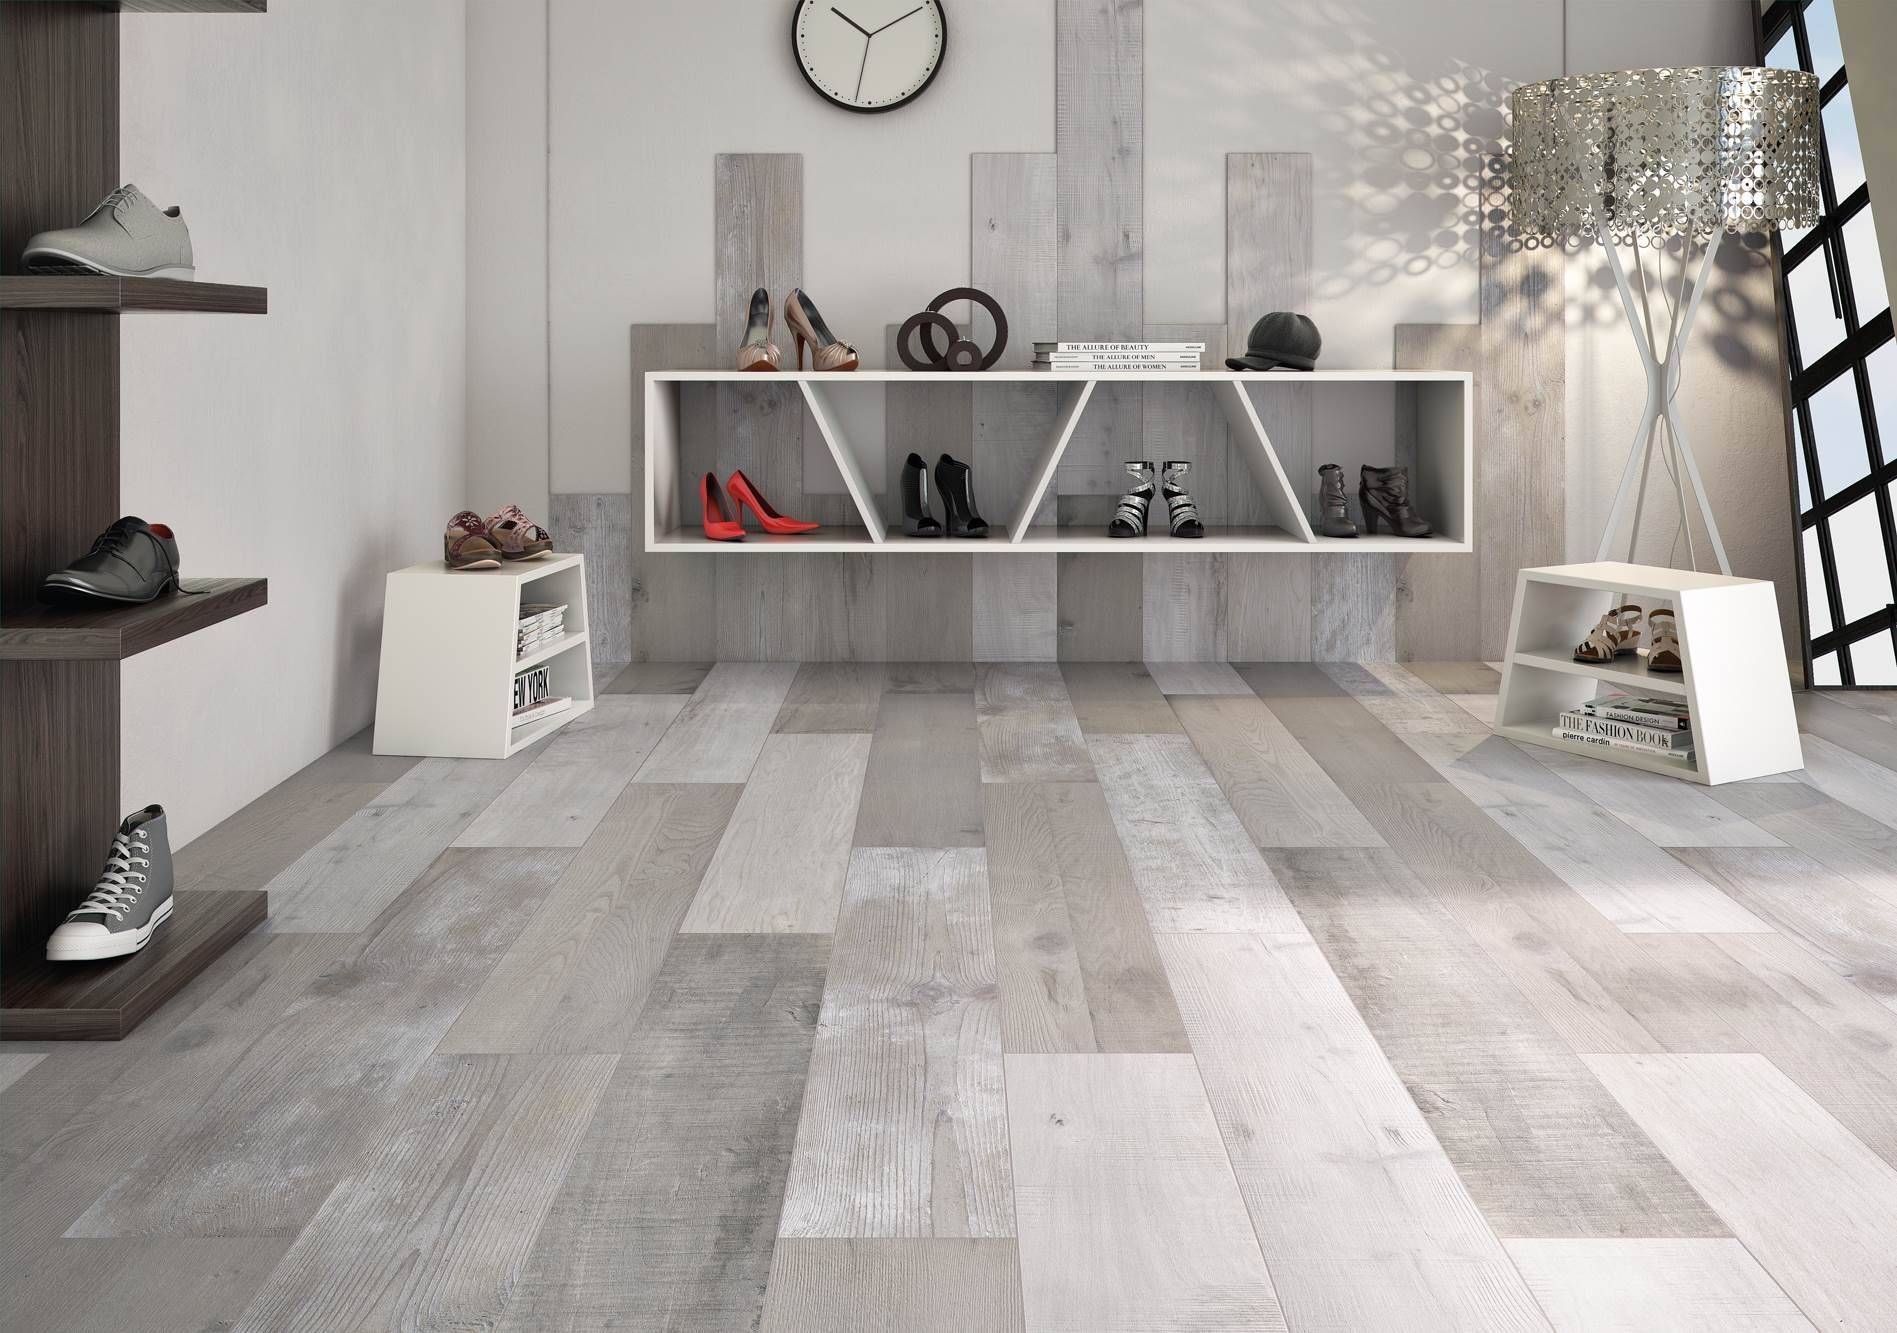 Suelo imitacion madera gris amazing perfect porcelnico for Suelo porcelanico gris